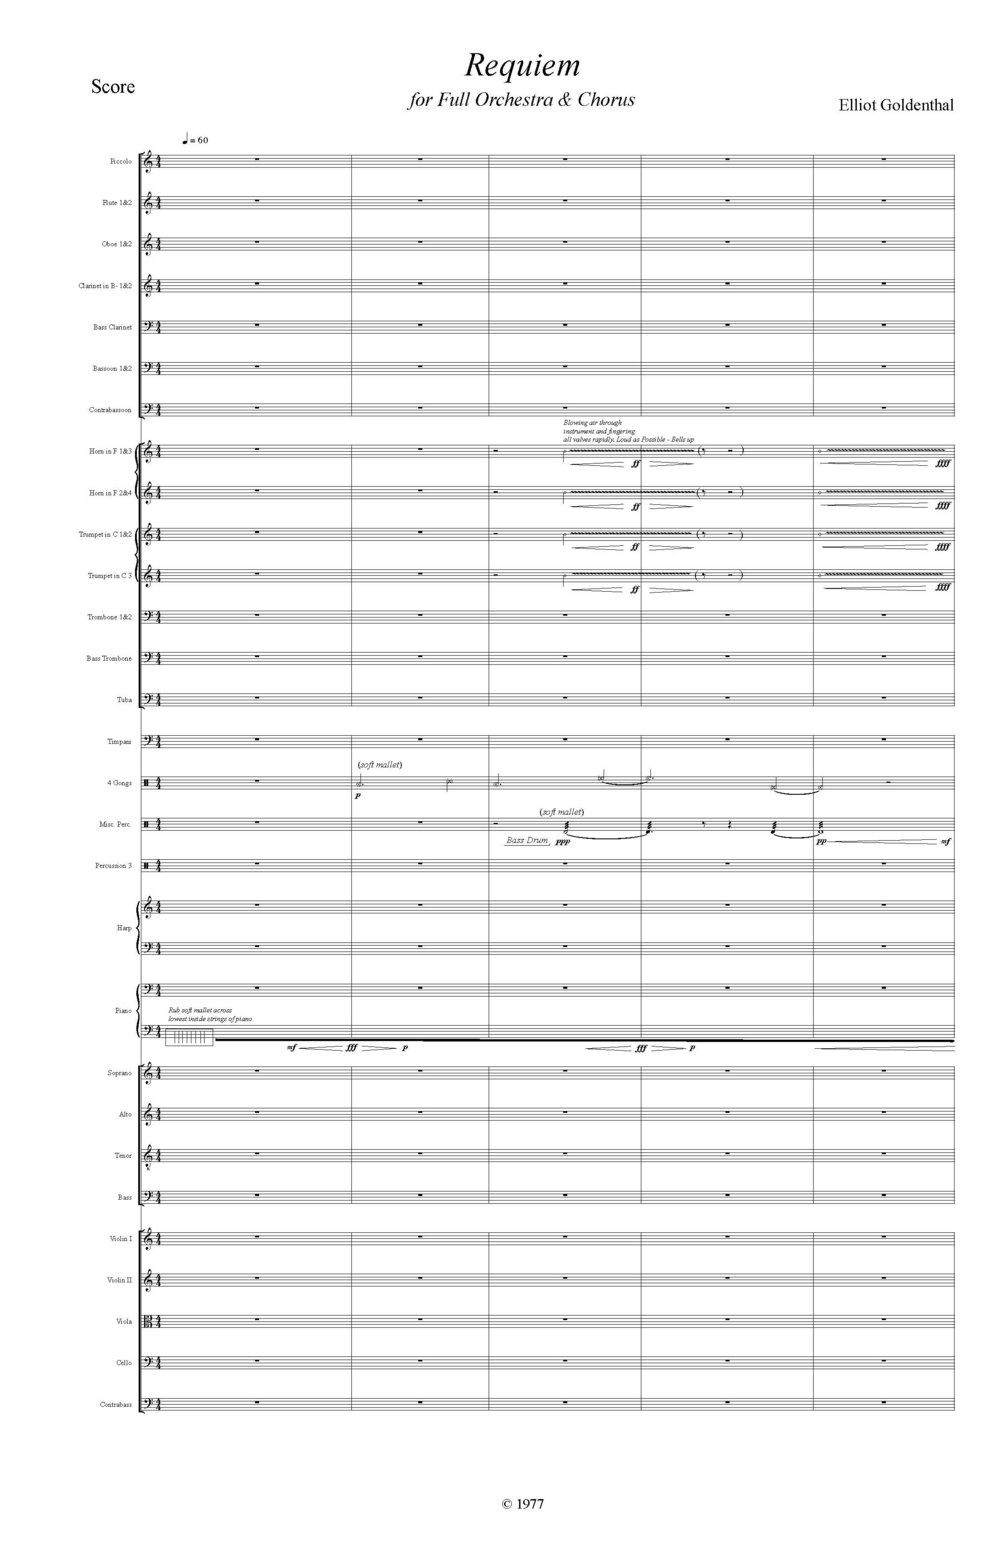 Requiem for Orchestra and Chorus 1.jpg